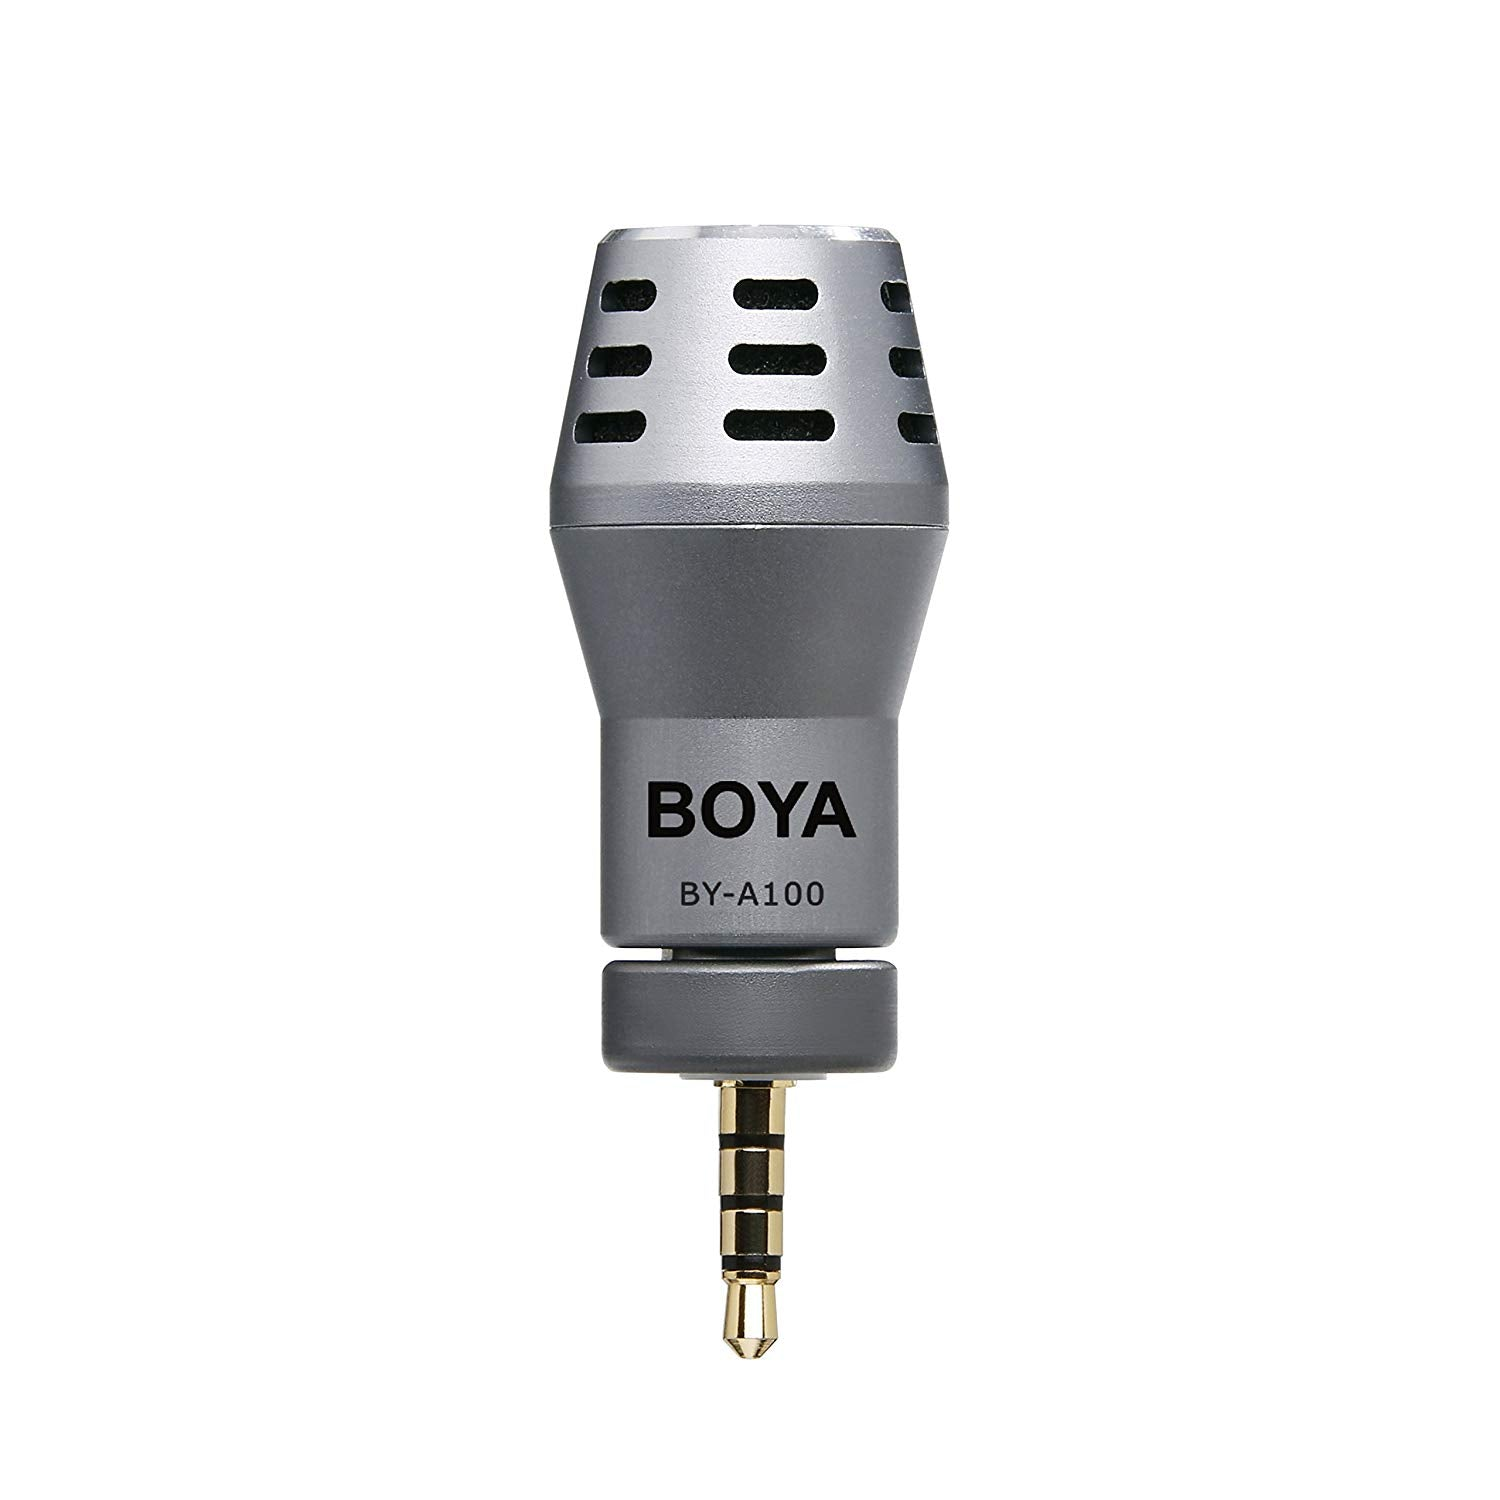 BOYA BY-A100 Omni Directional Condenser Microphone for IOS Android Smartphones ( Grey)